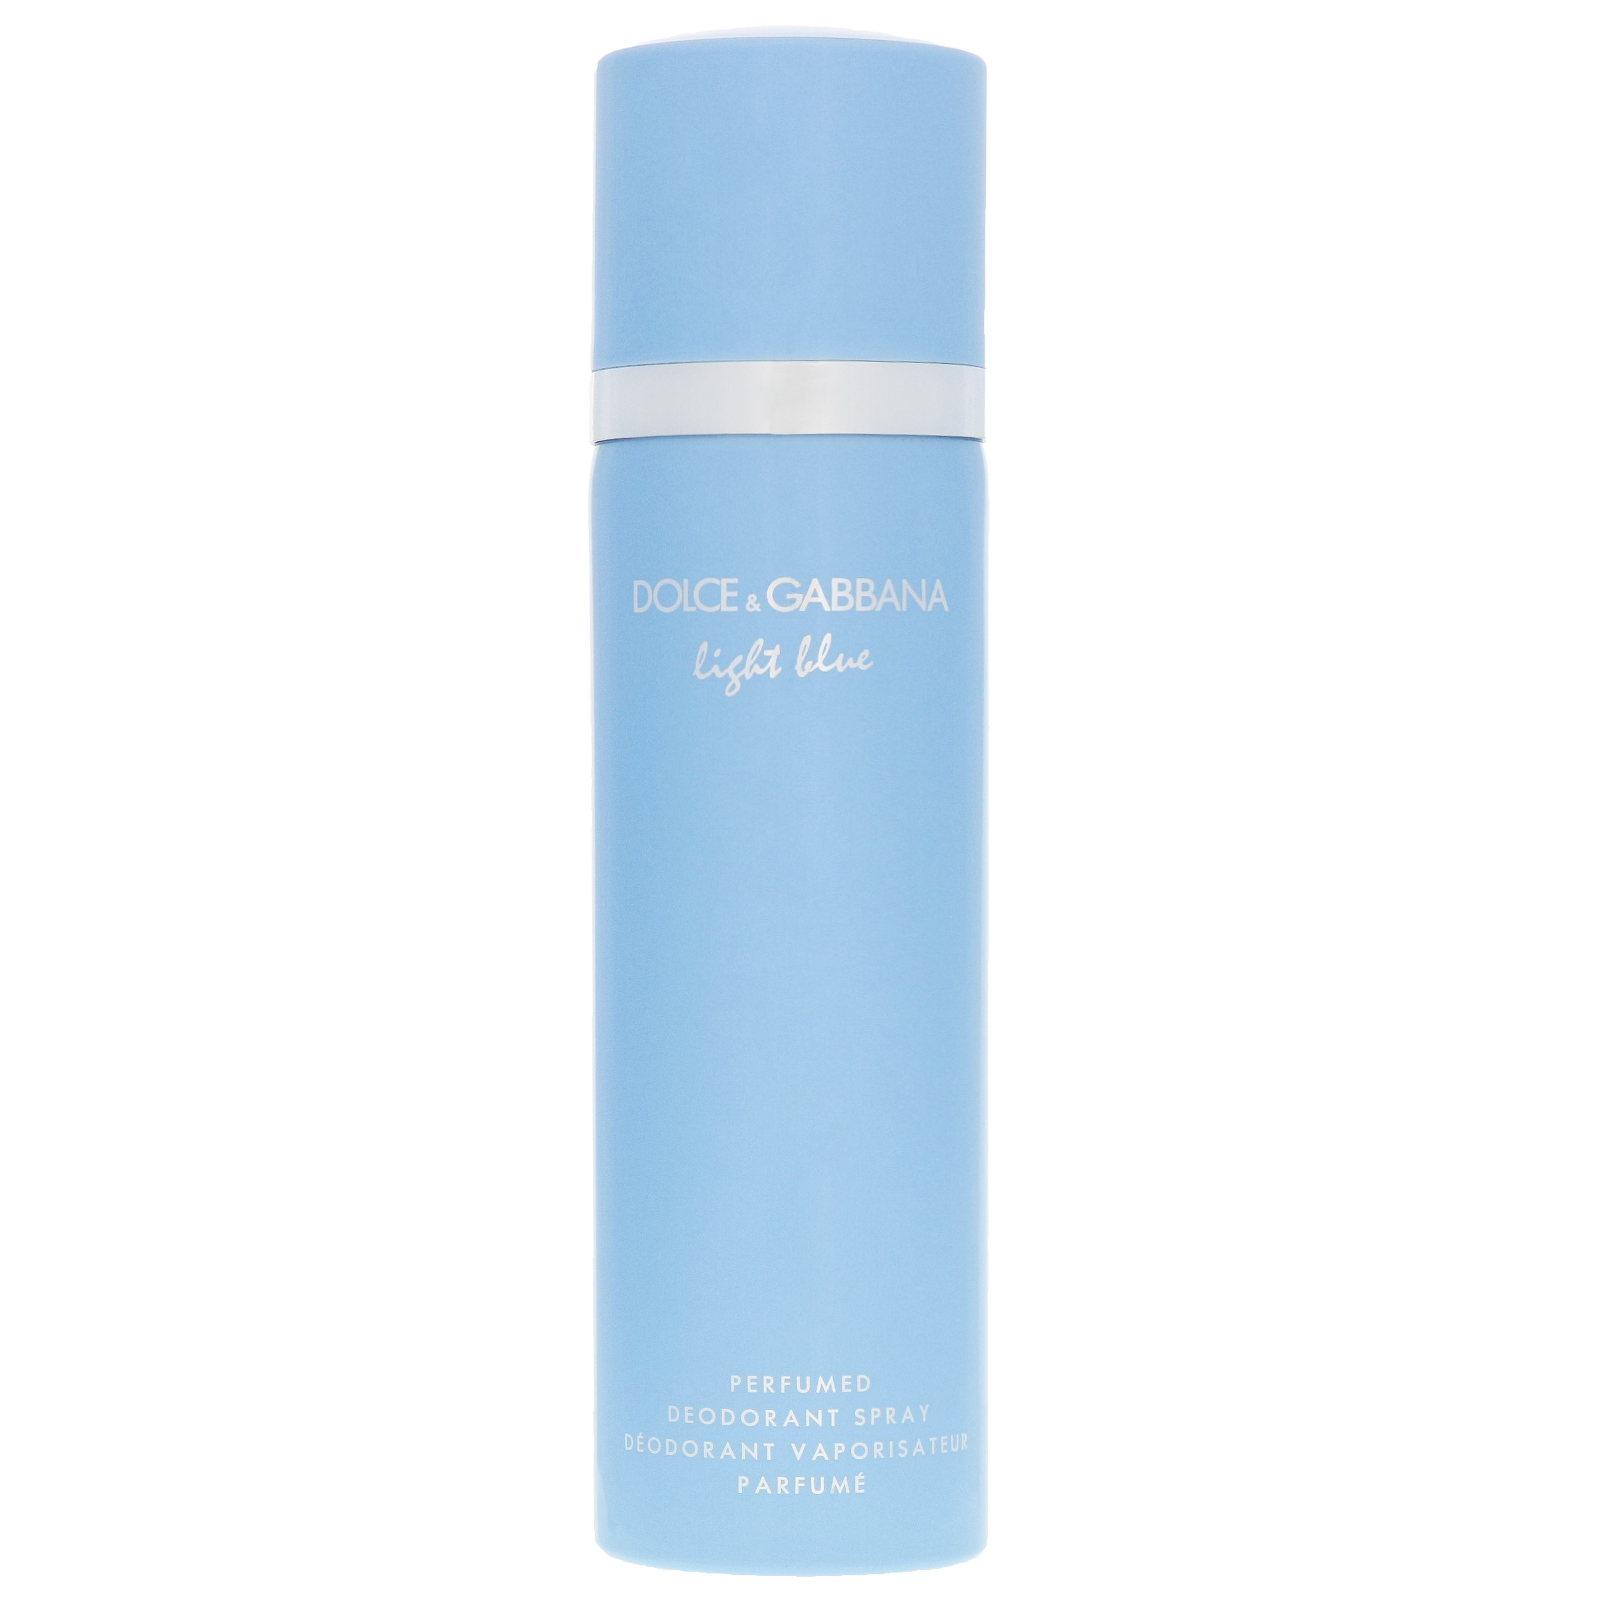 DOLCE & GABBANA Light Blue Deodorant Spray 100ml